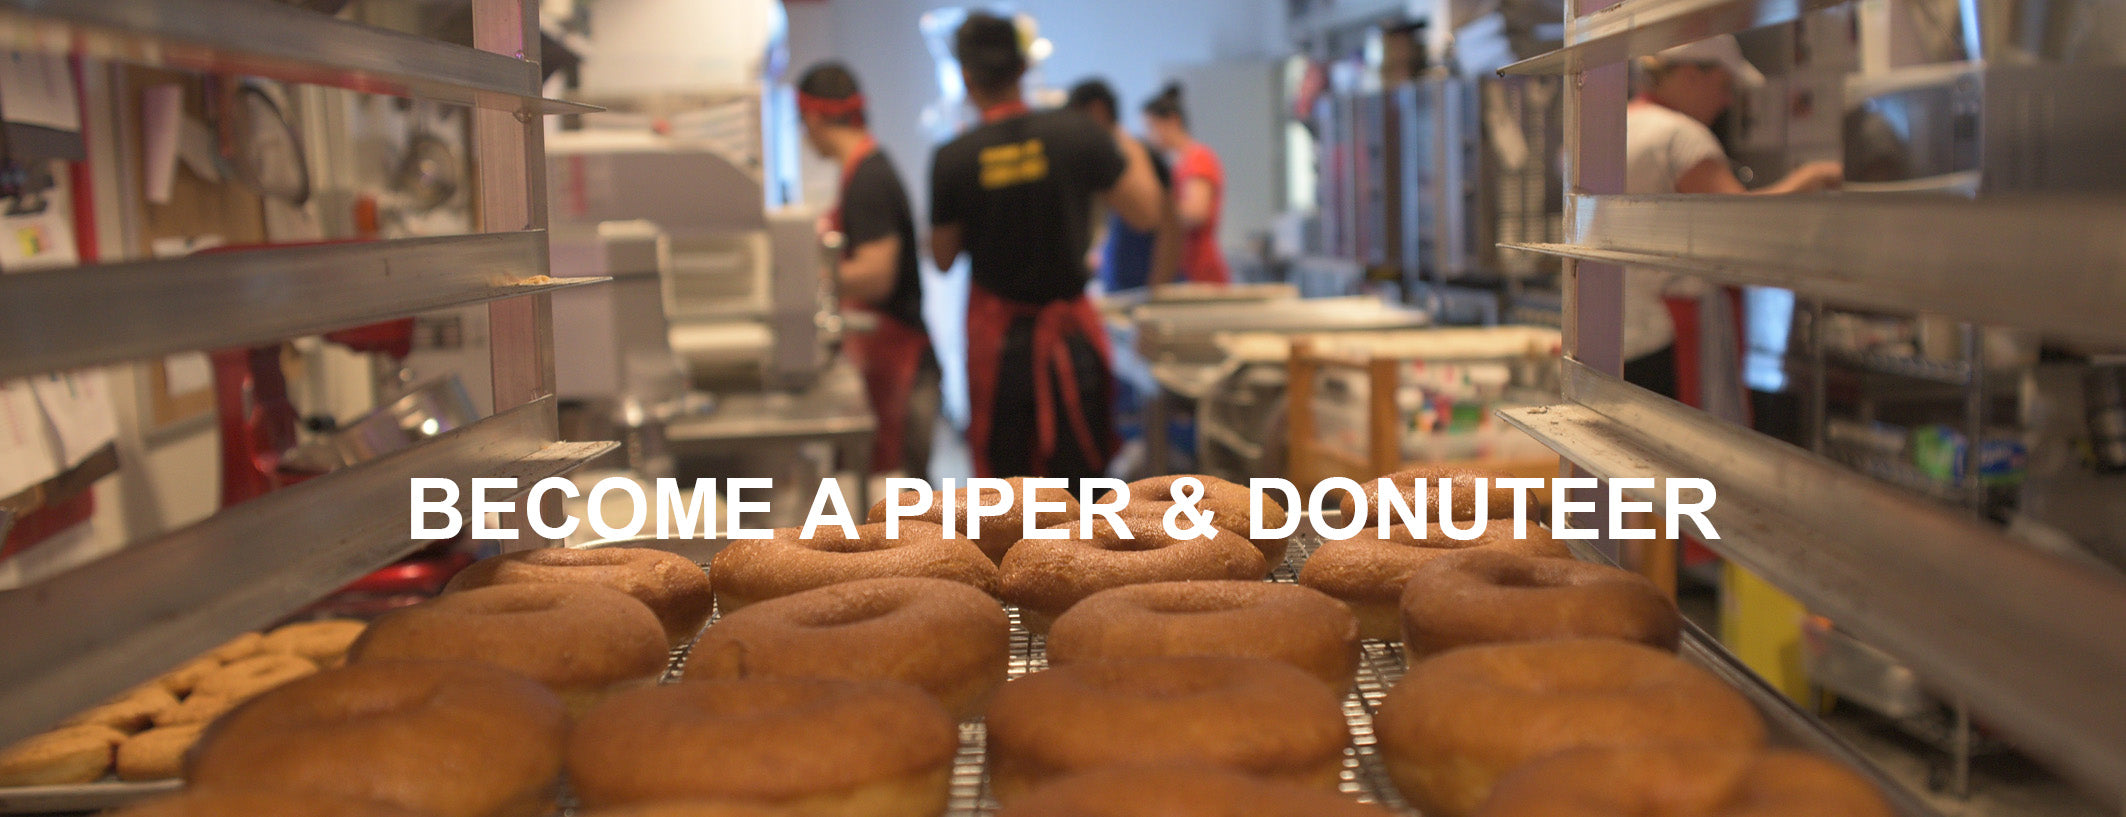 Become a Piper & Donuteer